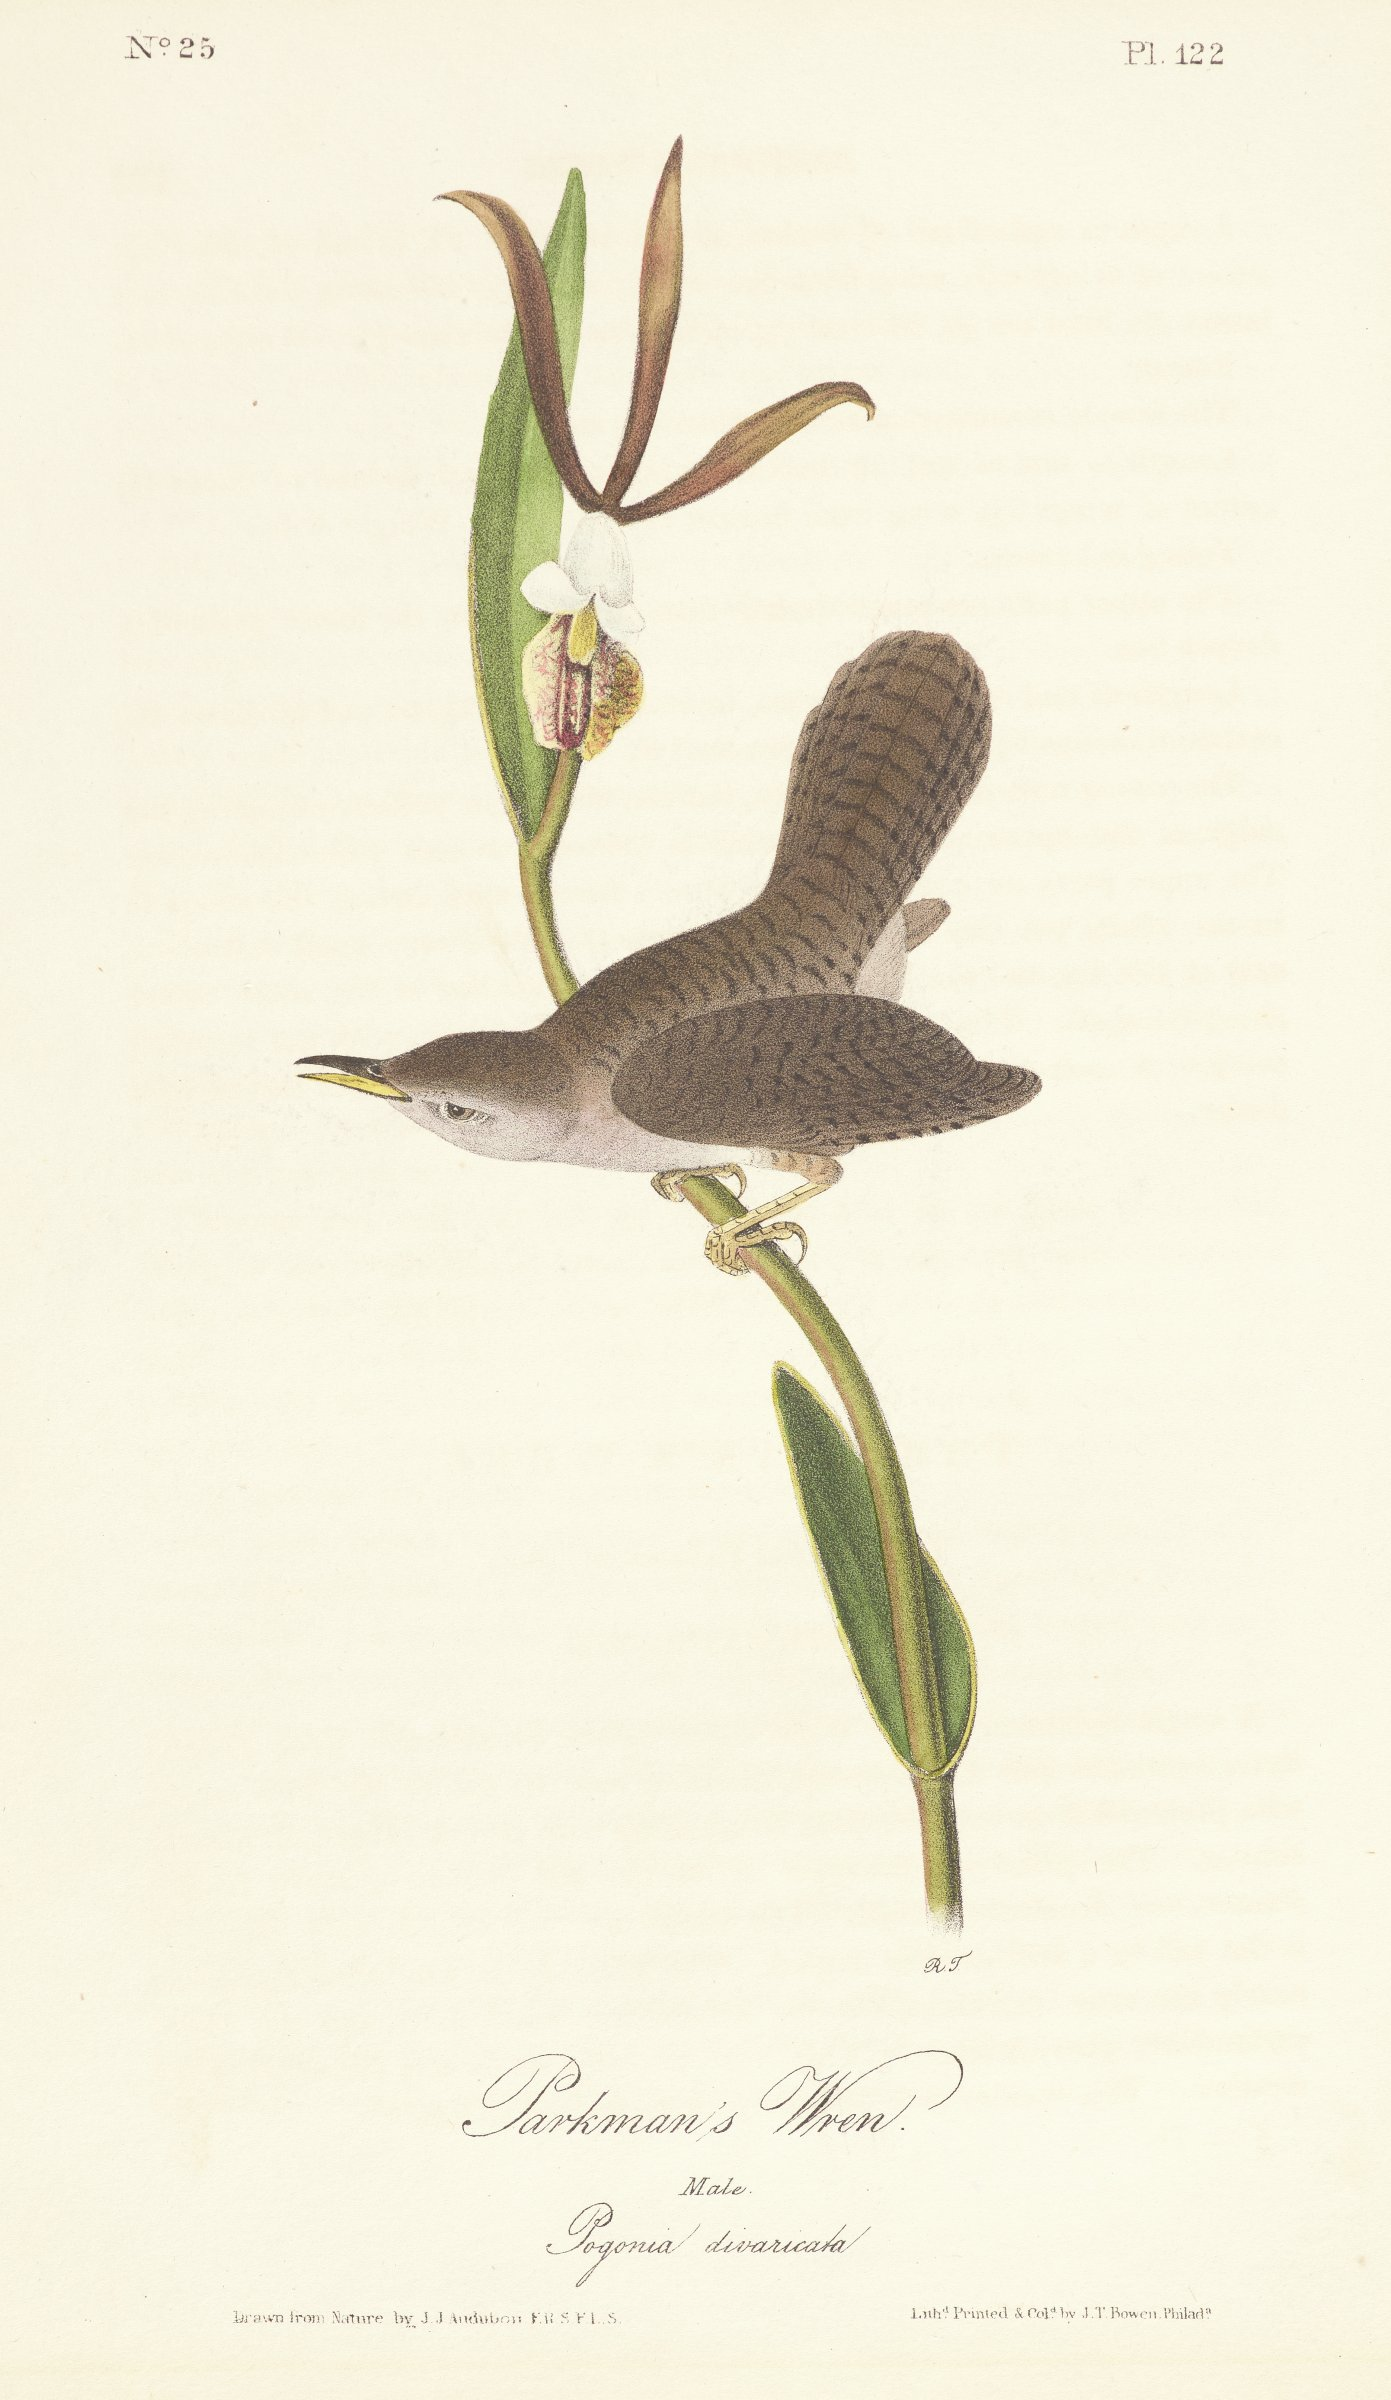 A bird with striped feathering stands on a stem that holds a small dark purple petalled flower.